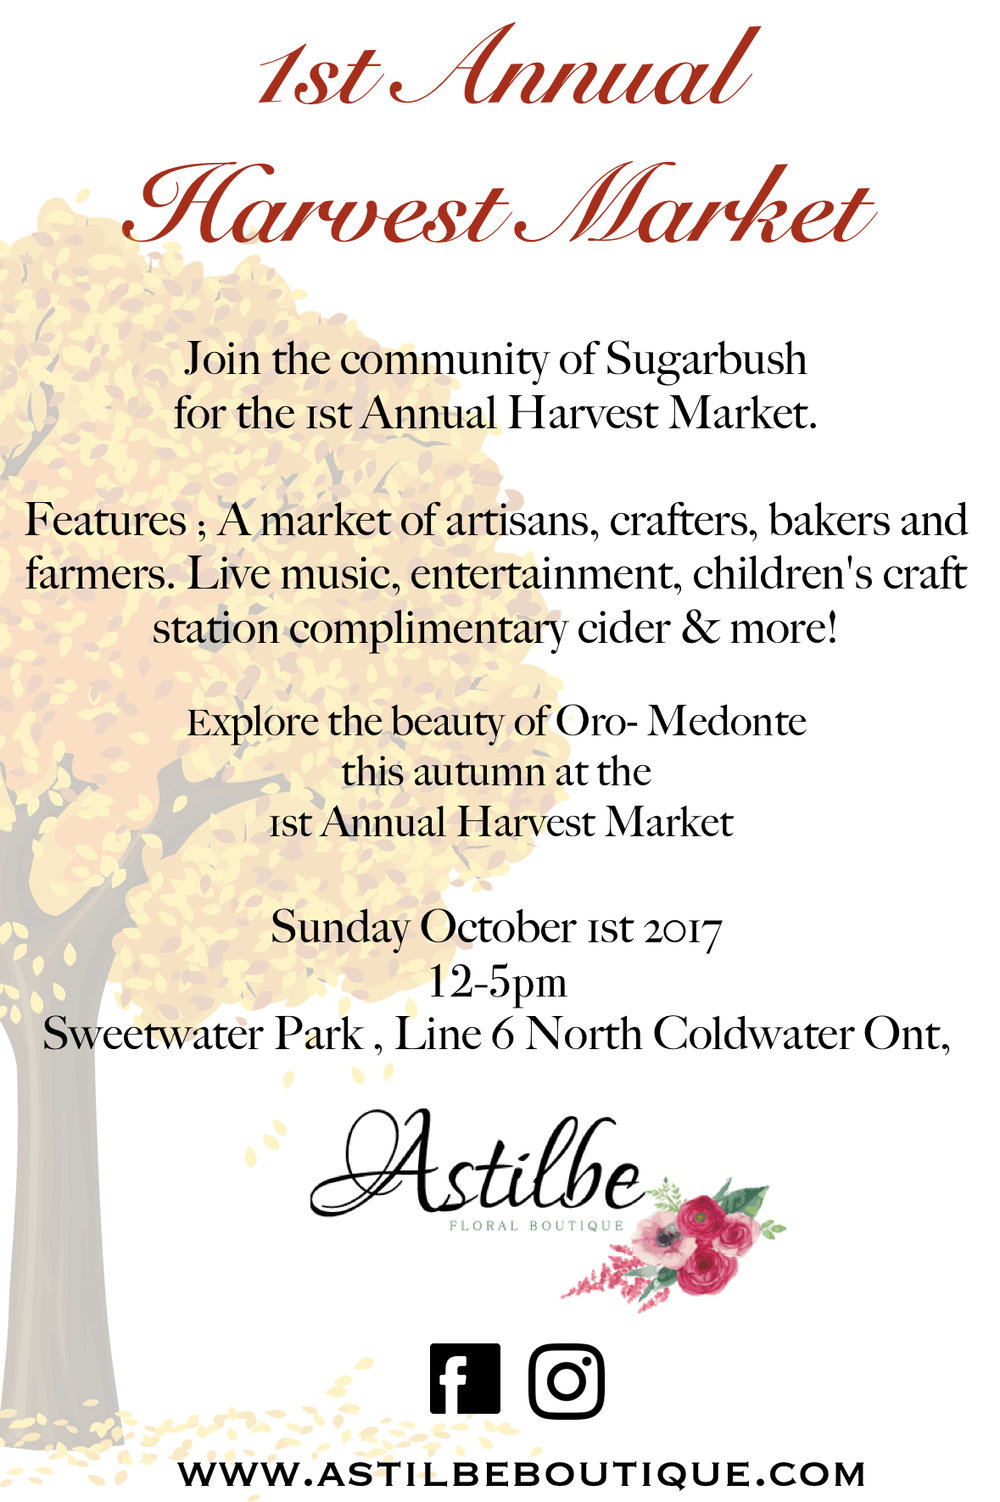 2017 HarvestMarket  - 1st Annual Sugarbush Harvest Market October 1st 2017 12- 5pm Sweetwater Park Horseshoe Valley Line 6 North Coldwater Ontario Calling all vendors we have approx. 30 Available spot's with limited spaces filling quickly!Interested in becoming a vendor?Please submit vendor details to* astilbeboutique@gmail.com Submission deadline September 1st 2017.416 - 566 - 8015